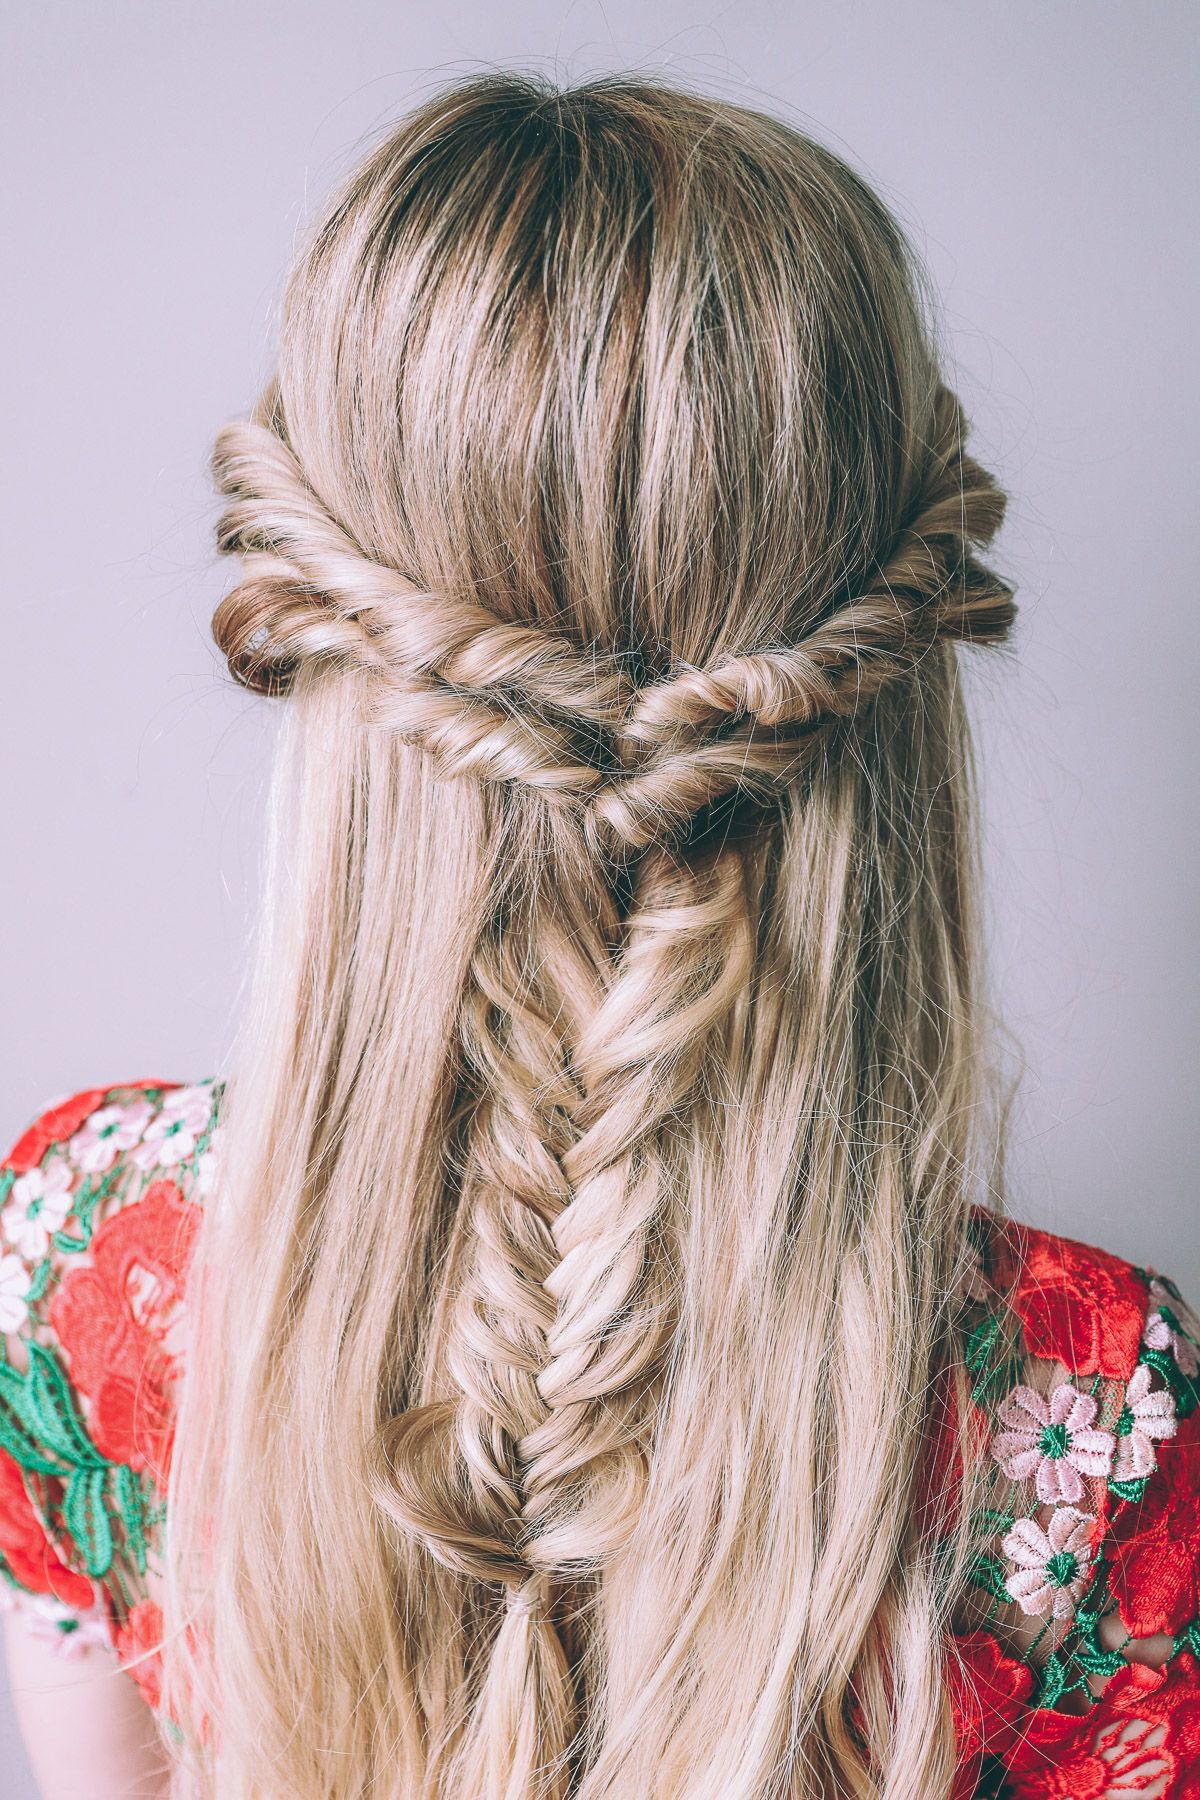 3 Styles 3 Days Barefoot Blonde By Amber Fillerup Clark Cowgirl Hair Styles Hair Styles Cowgirl Hair